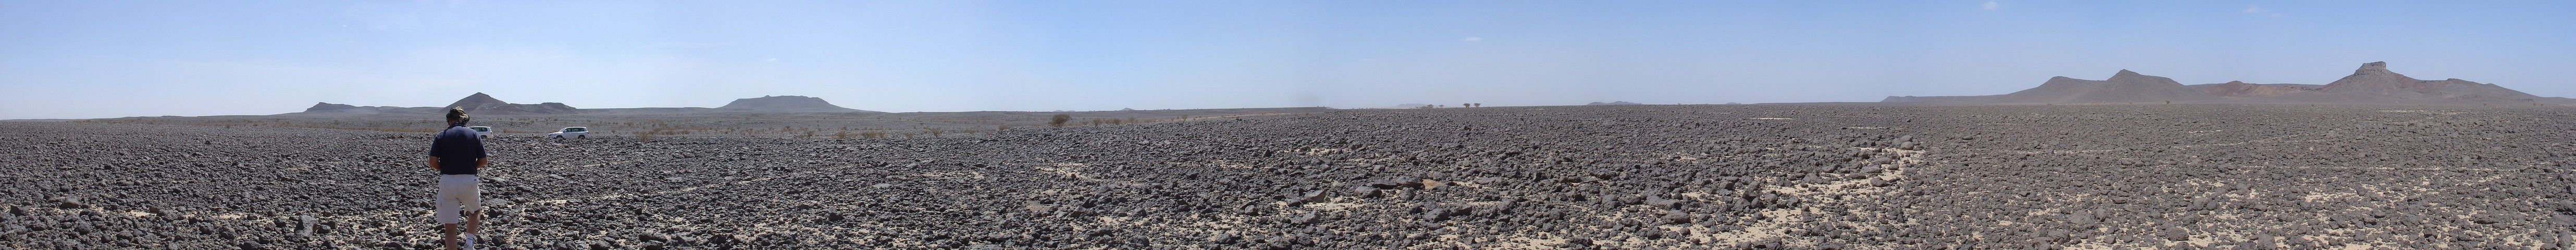 Panorama photo showing 'magnificent desolation'